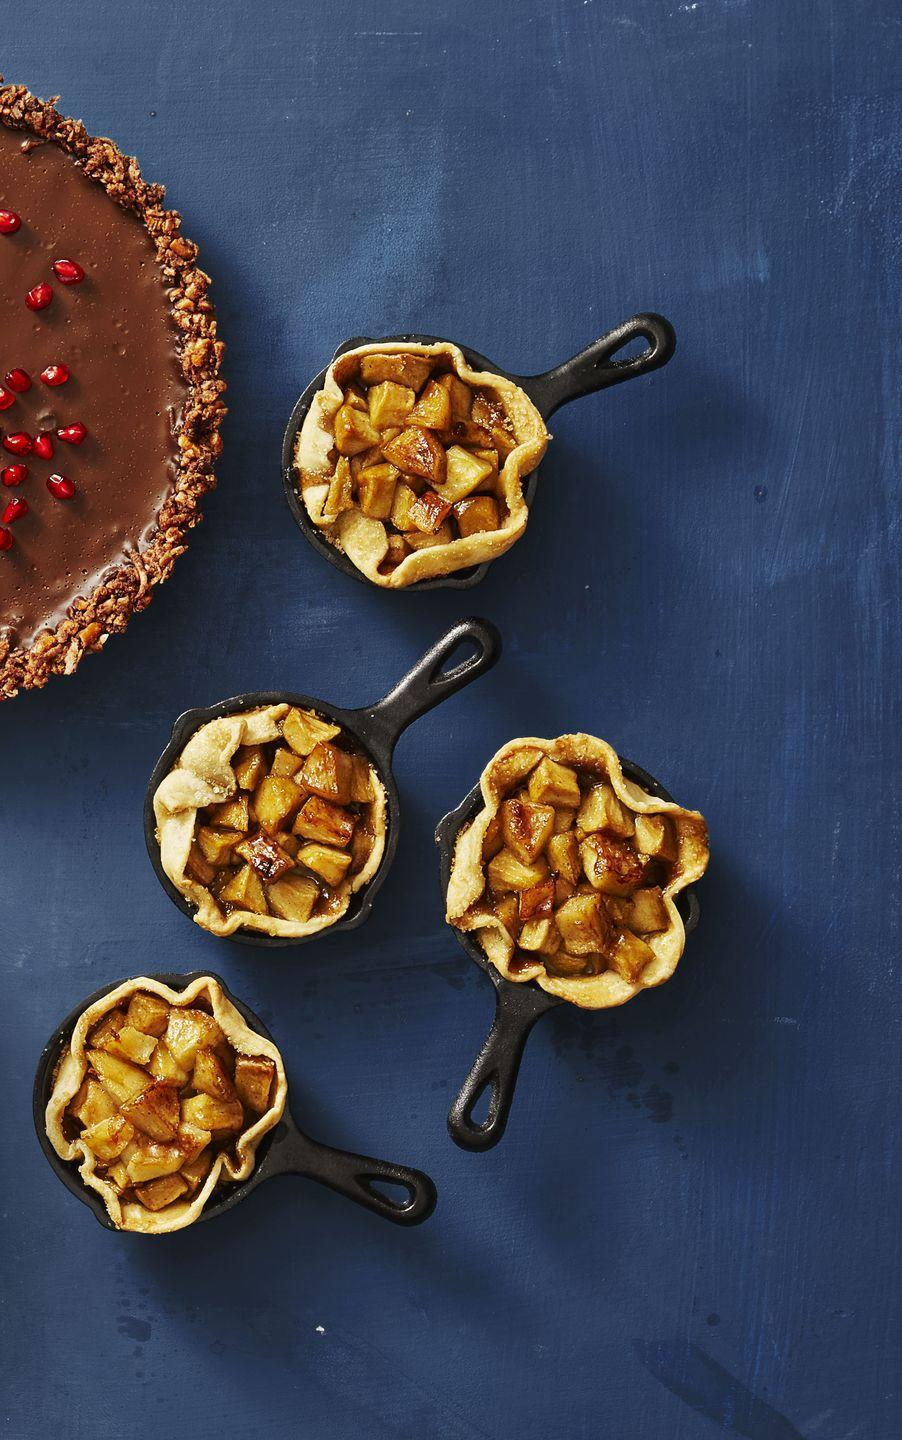 "<p>Single-serving pies that you don't have to share? That's something to be thankful for.</p><p><a href=""https://www.goodhousekeeping.com/food-recipes/a41081/skillet-apple-minis-recipe/"" rel=""nofollow noopener"" target=""_blank"" data-ylk=""slk:Get the recipe for Skillet Apple Minis »"" class=""link rapid-noclick-resp""><em>Get the recipe for Skillet Apple Minis »</em></a></p>"